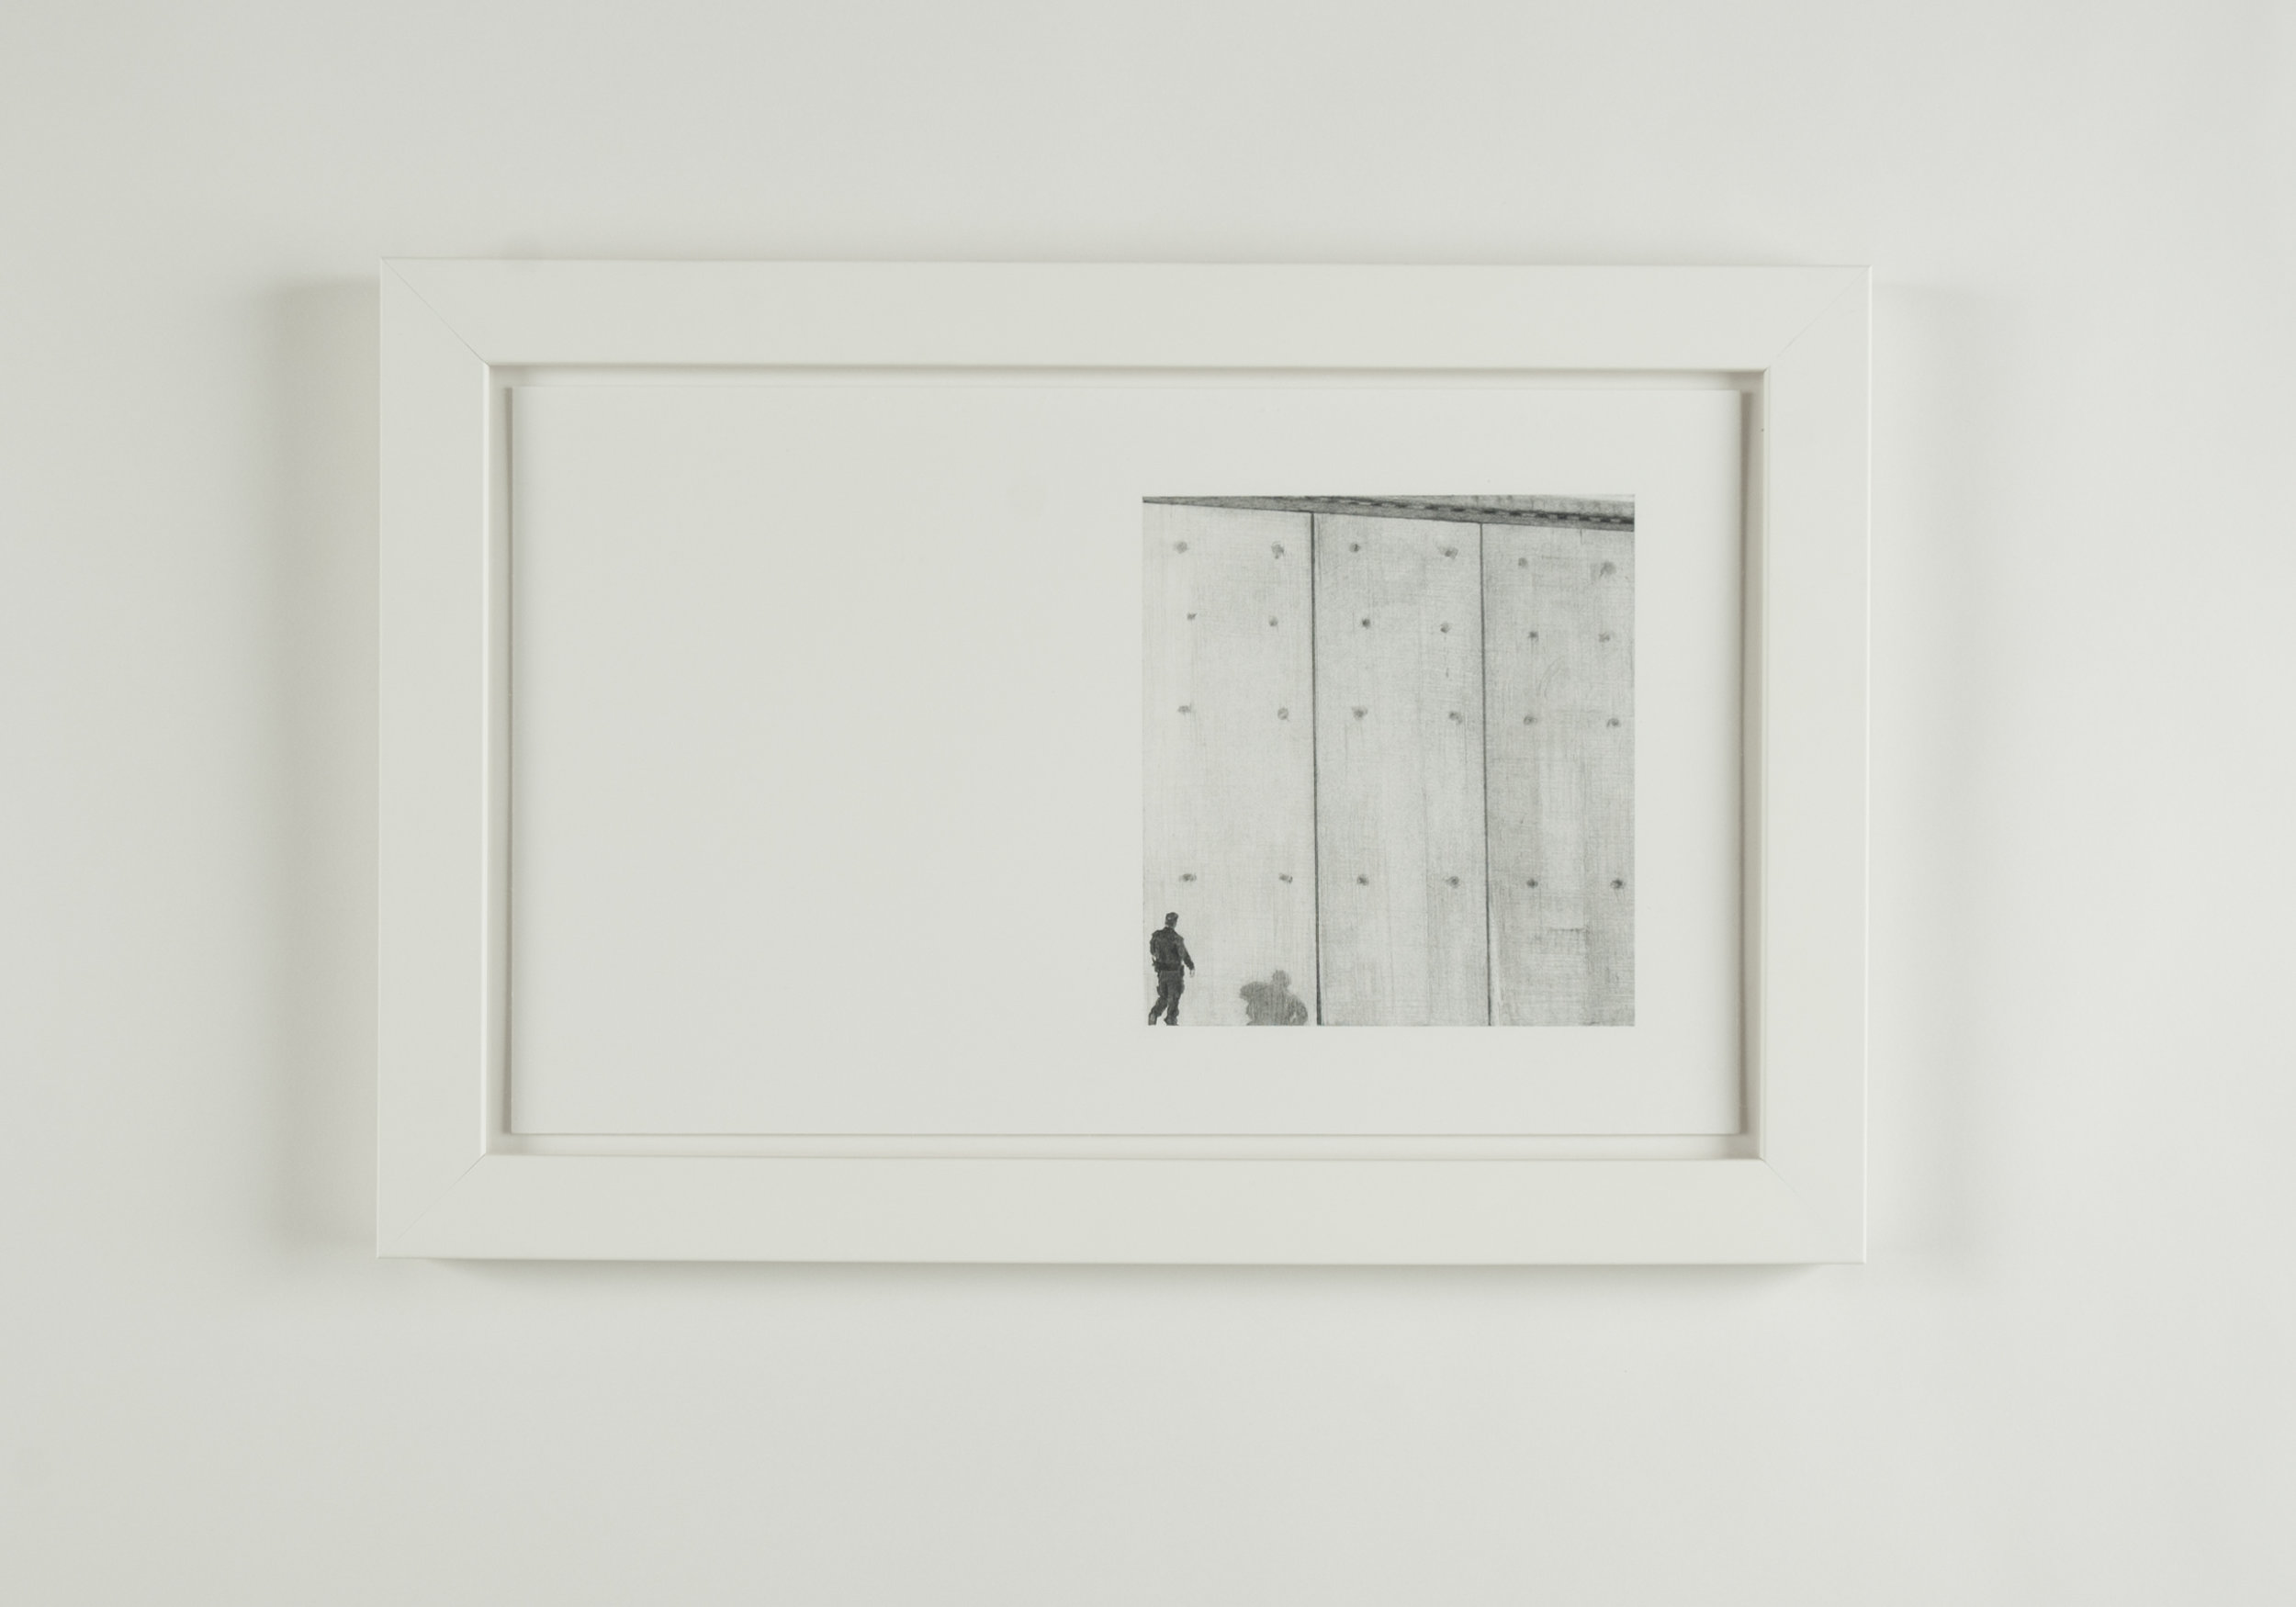 Untitled (Rumination on Borders, I),  2019  Detail 3 of 4 Graphite on Paper  43 x 28.5 cm (17 x 11.25 inches)  Source Image: Image of a prototype for the US-Mexico Border Wall photographed by Mario Tama, Getty Images.